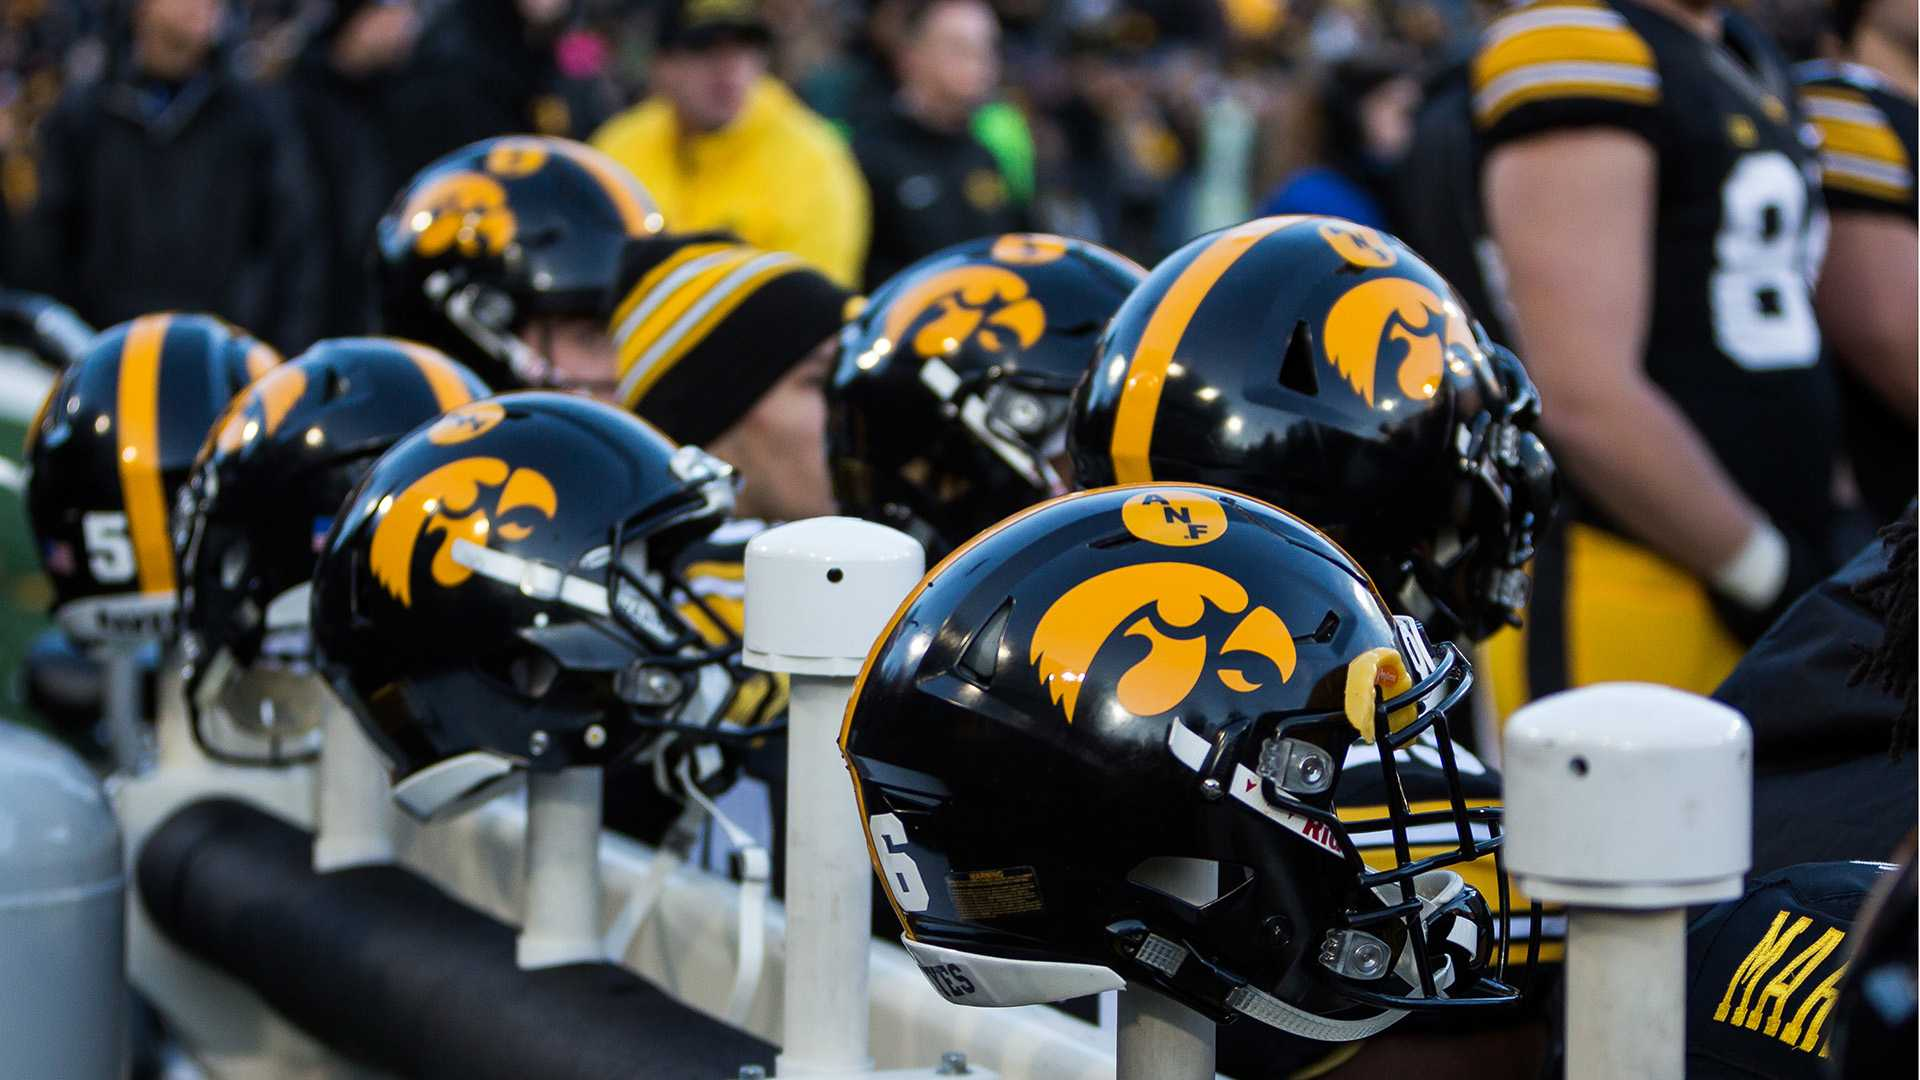 Looking at Iowa's Athletics Hall of Fame class